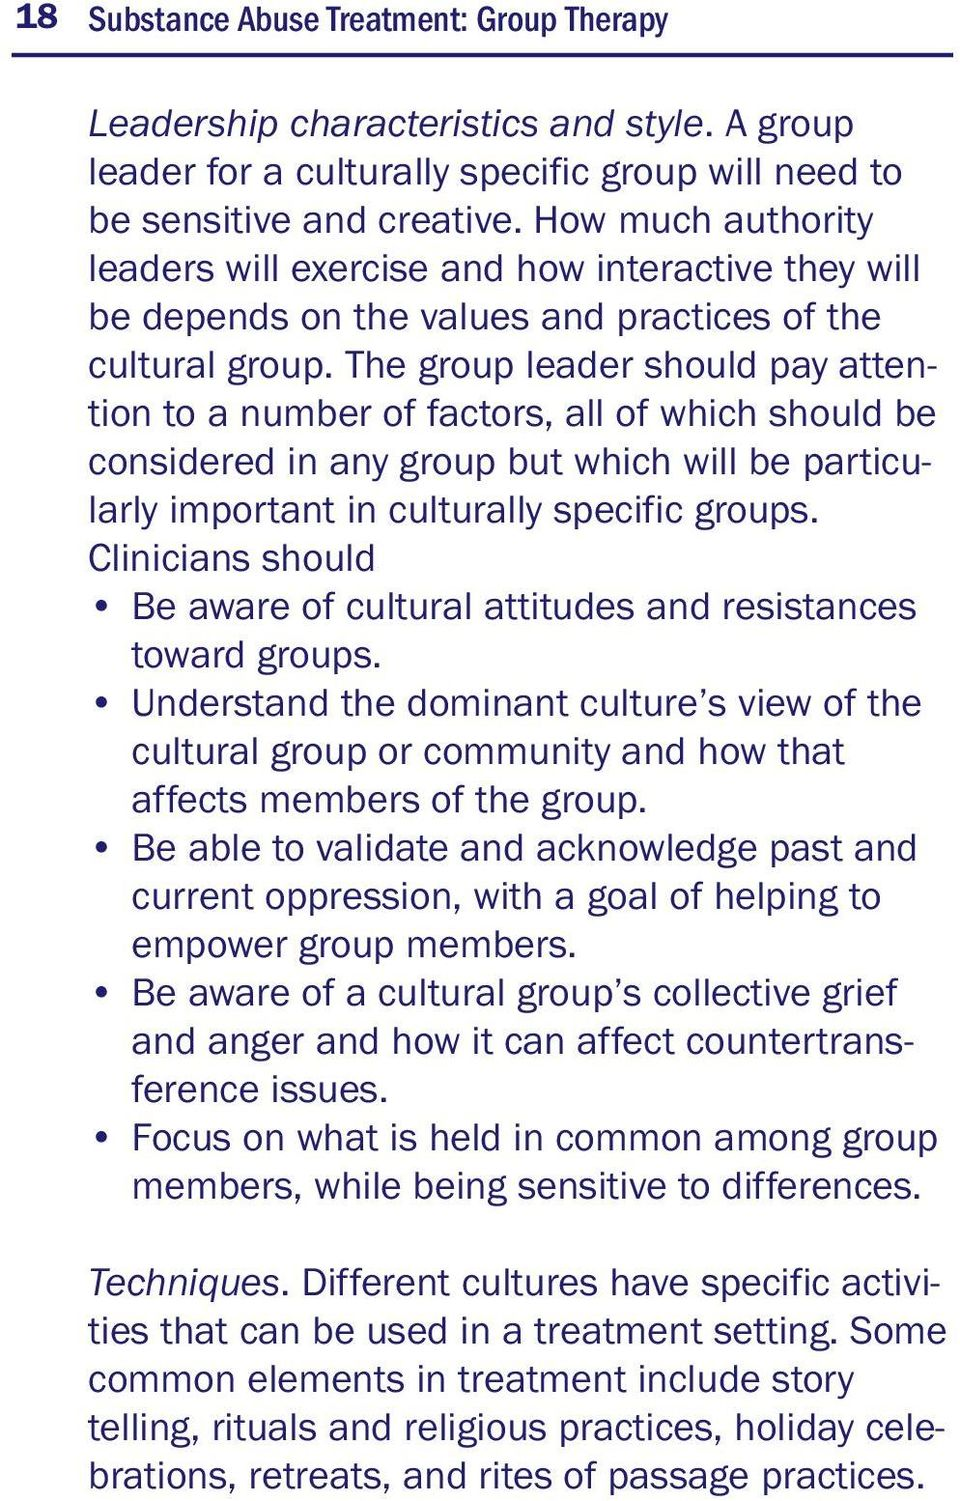 The group leader should pay attention to a number of factors, all of which should be considered in any group but which will be particularly important in culturally specific groups.